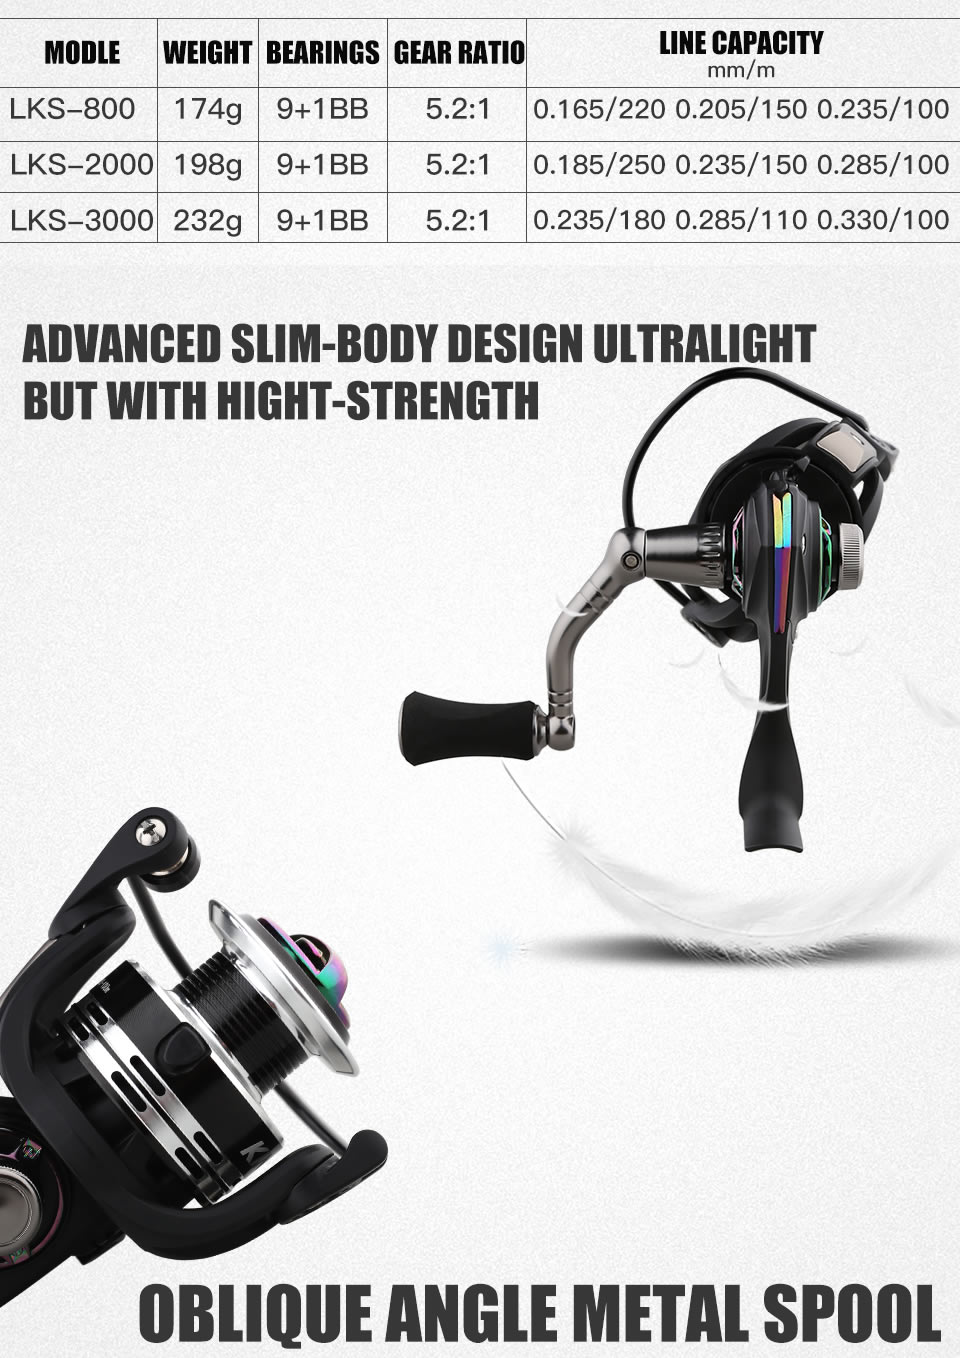 Kingdom KING II Spinning Rod Combo Baitcasting Spincasting Fishing Rods Reel set 2pc Top Section and 2pc Power Fishing Tackle (18)